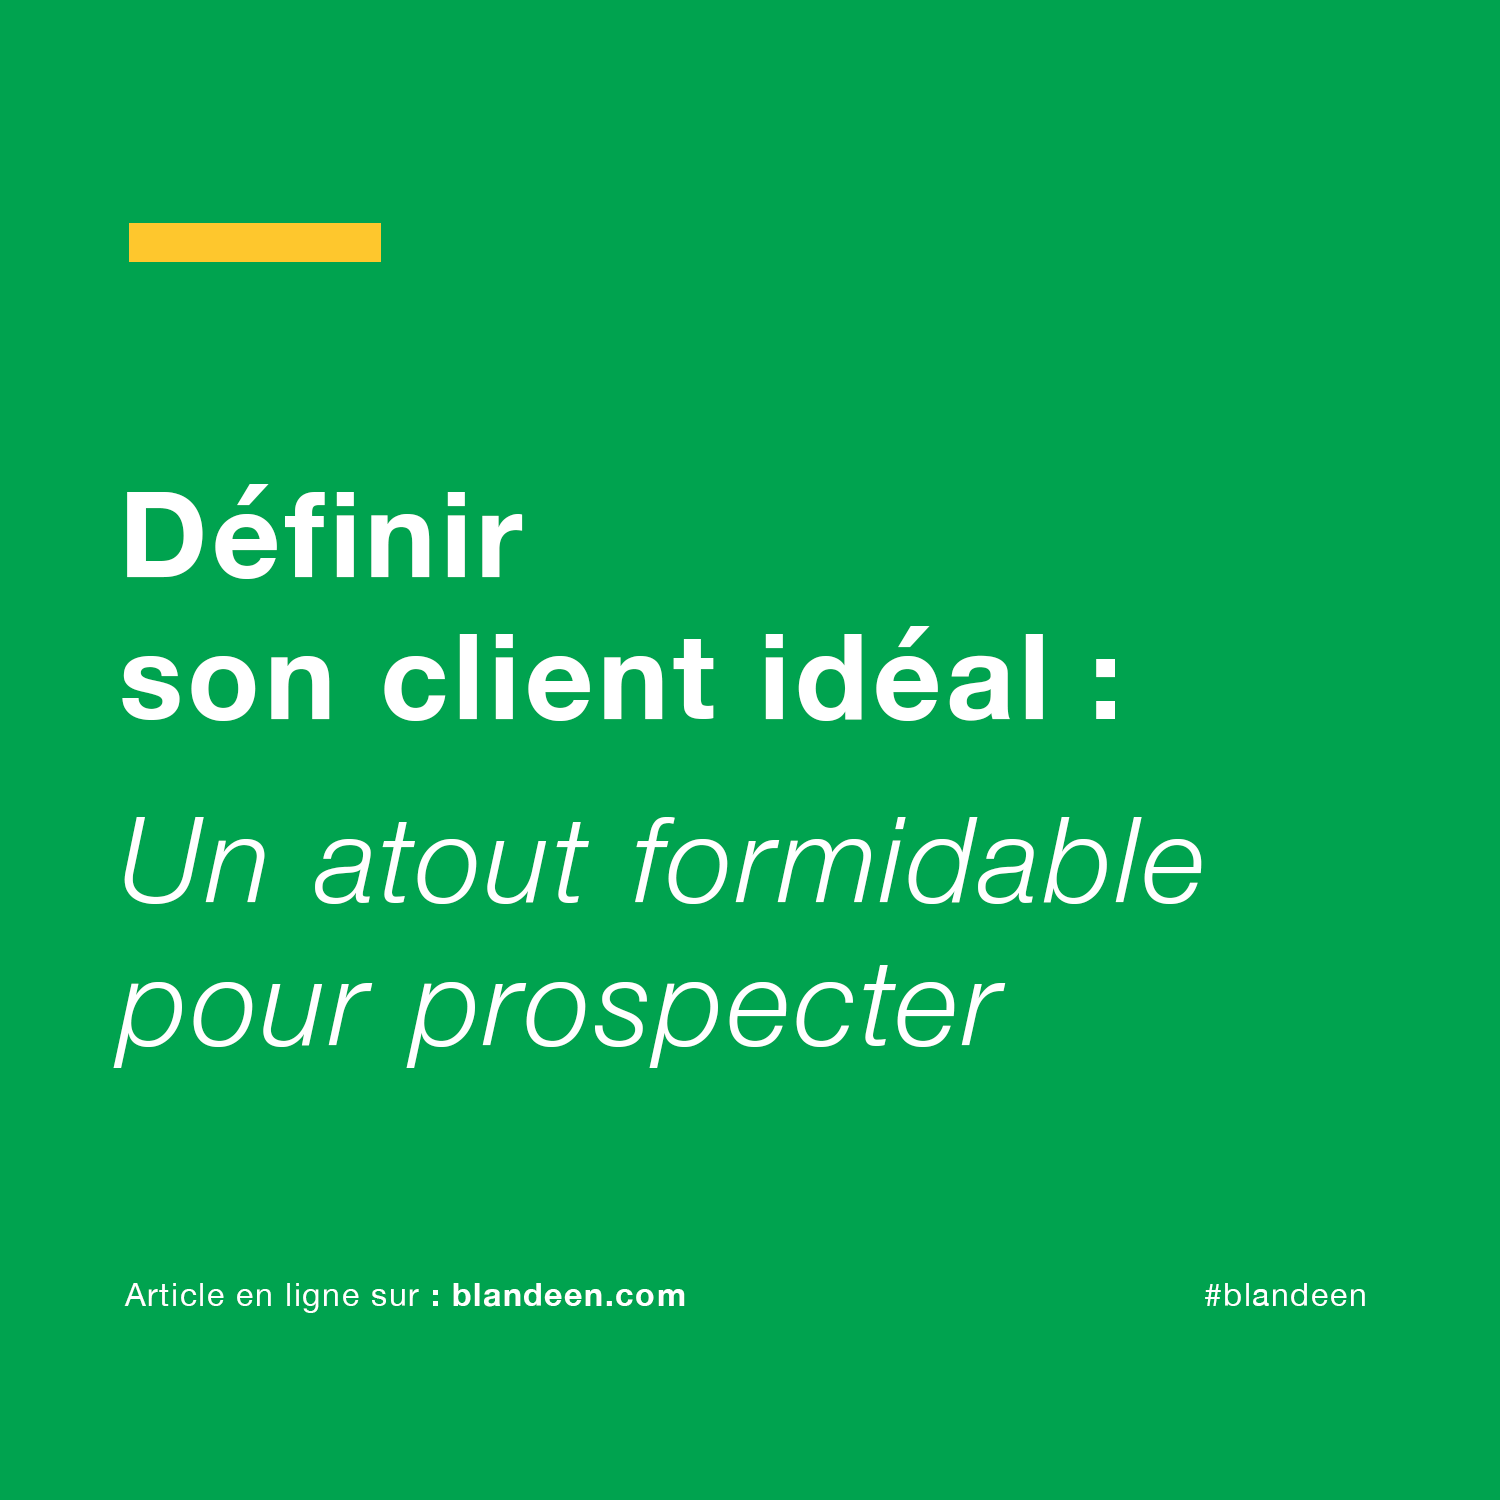 blandeen-article-definir-client-ideal-designers-marketing-demarcher-prospection-graphistes-entraide-coworking